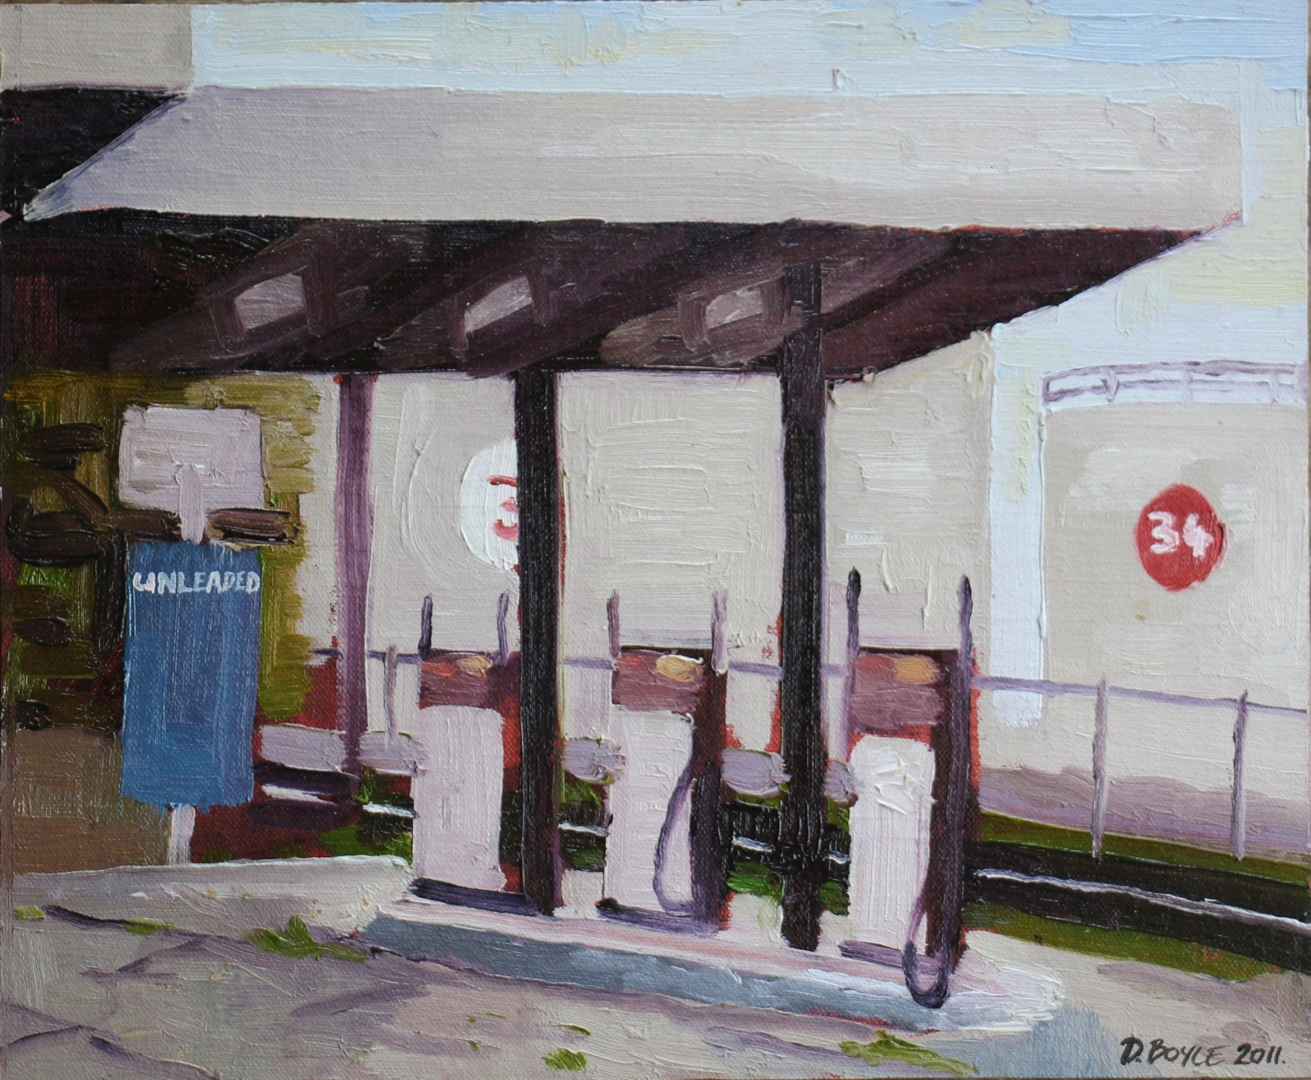 David Boyle, Unleaded in Spotswood, 2011, oil on linen board, 30x25cm image